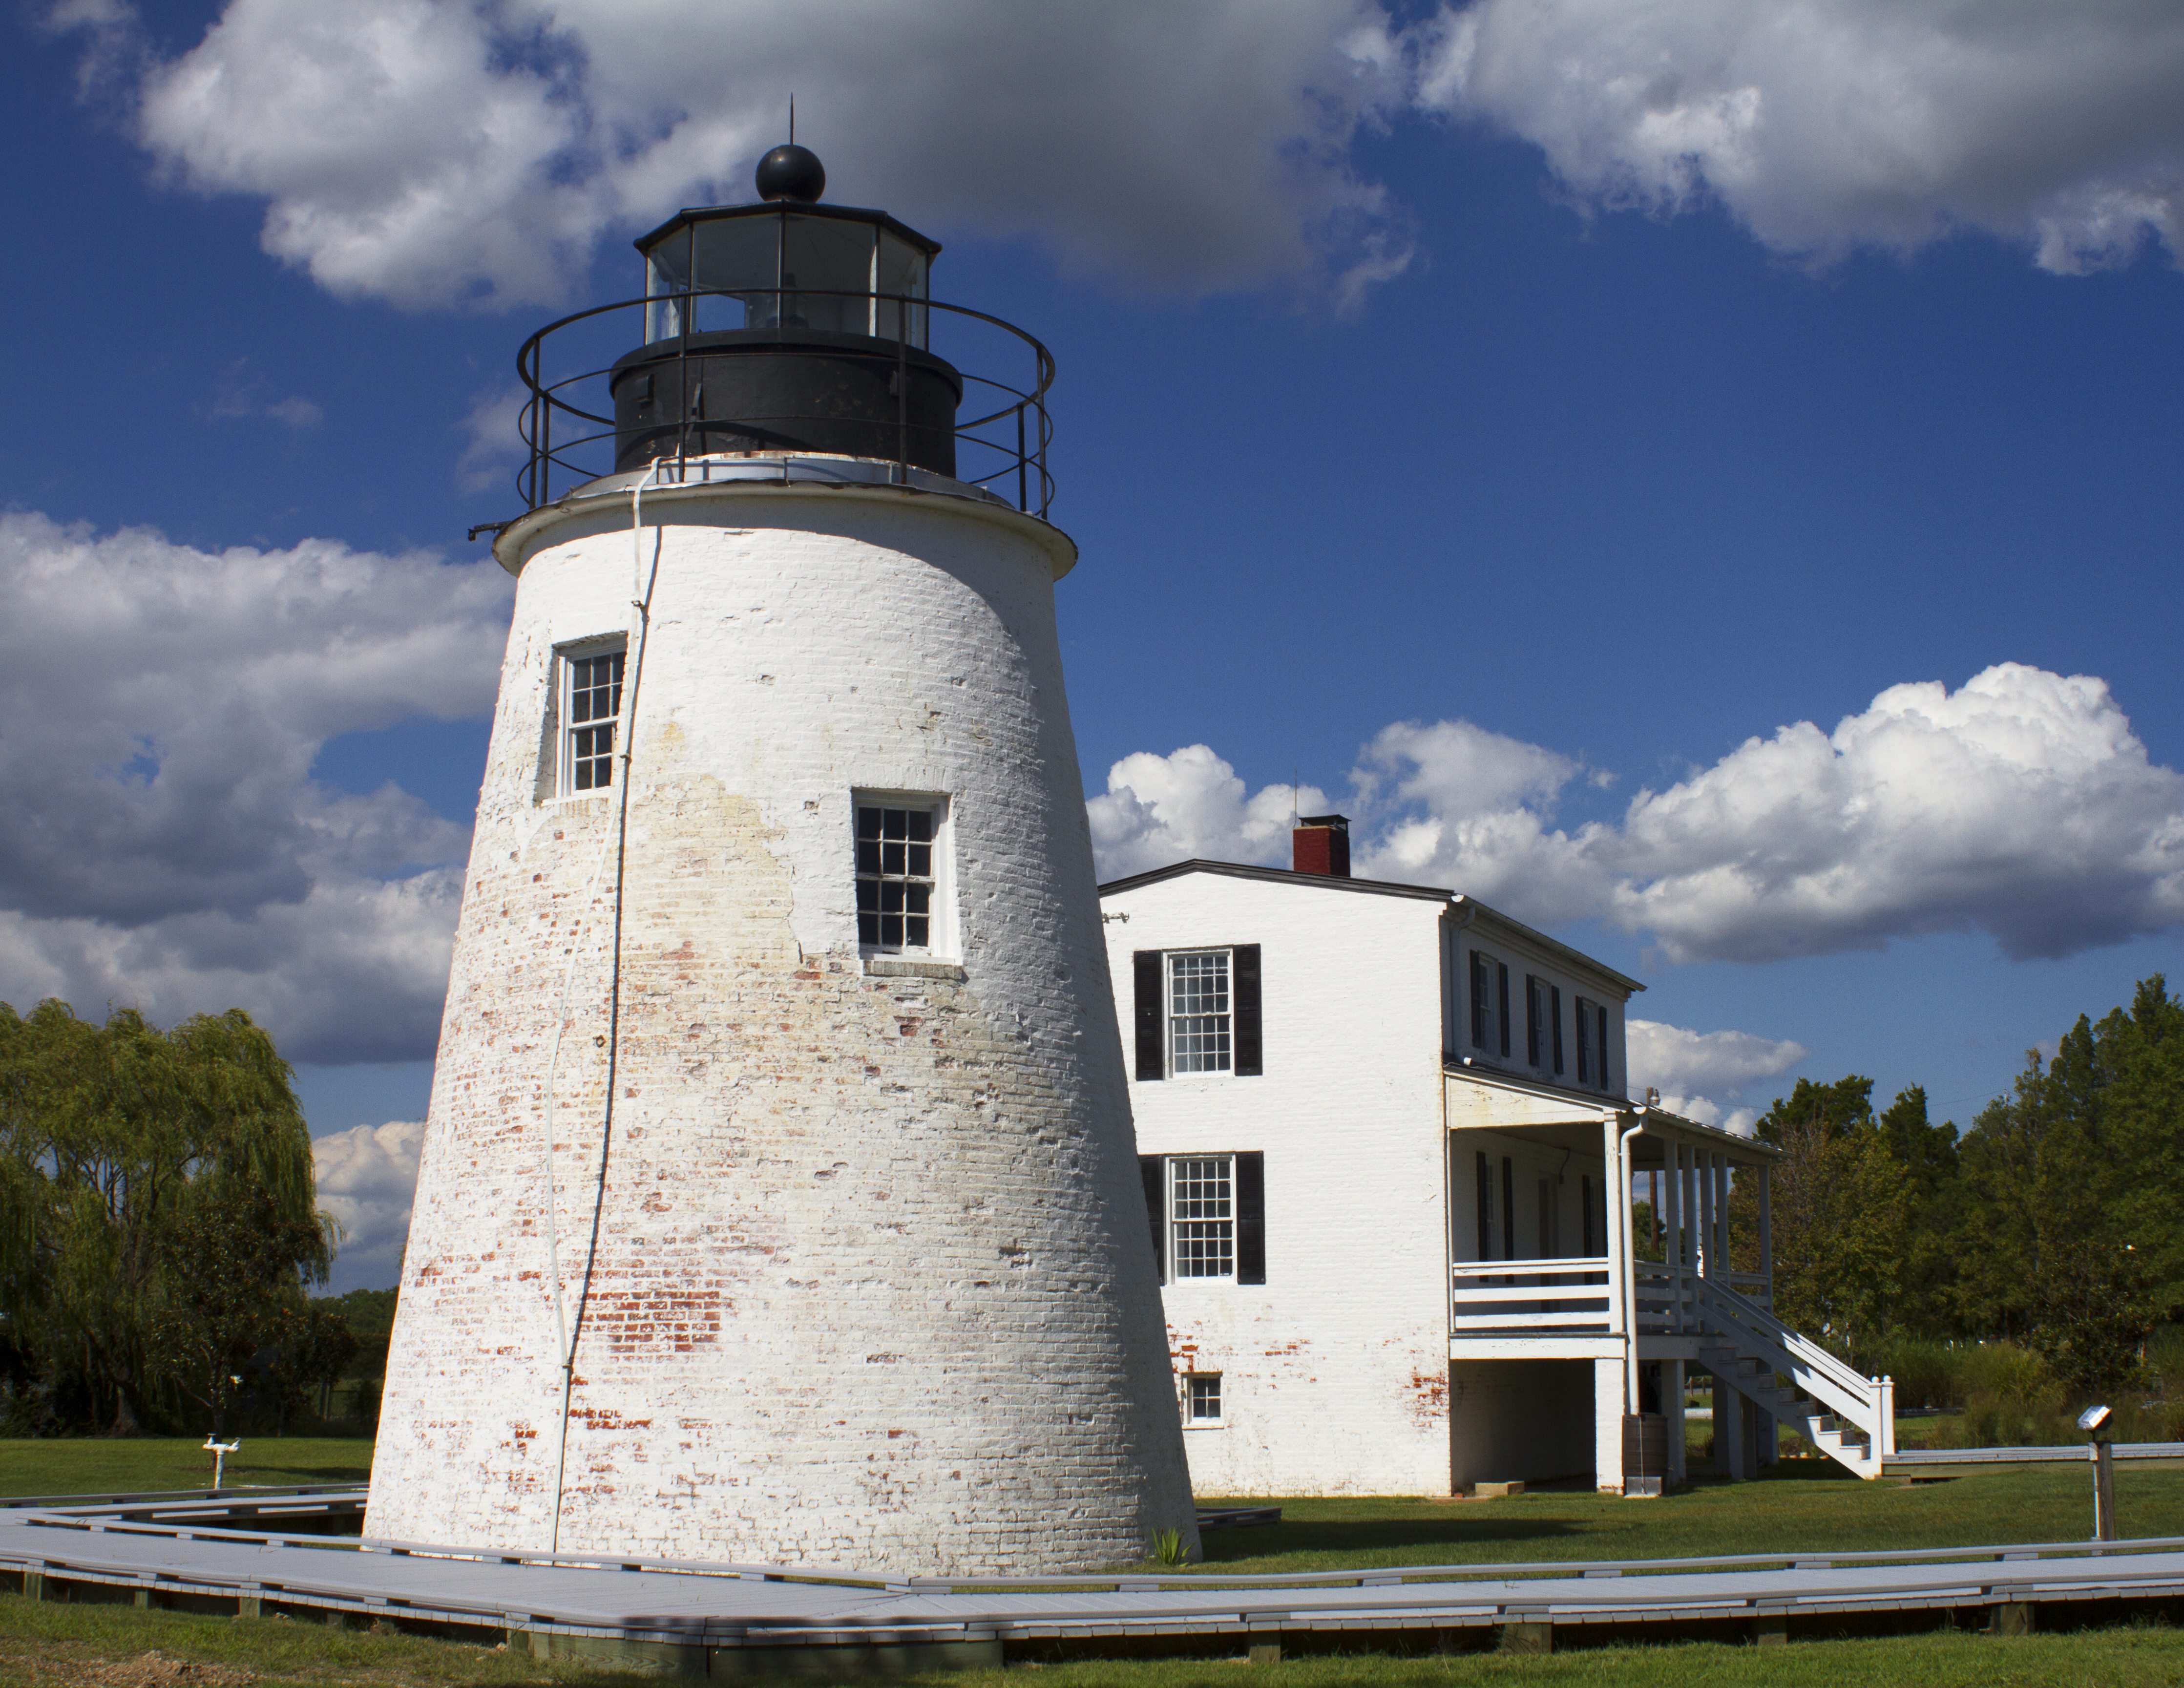 The Piney Point Light House Museum